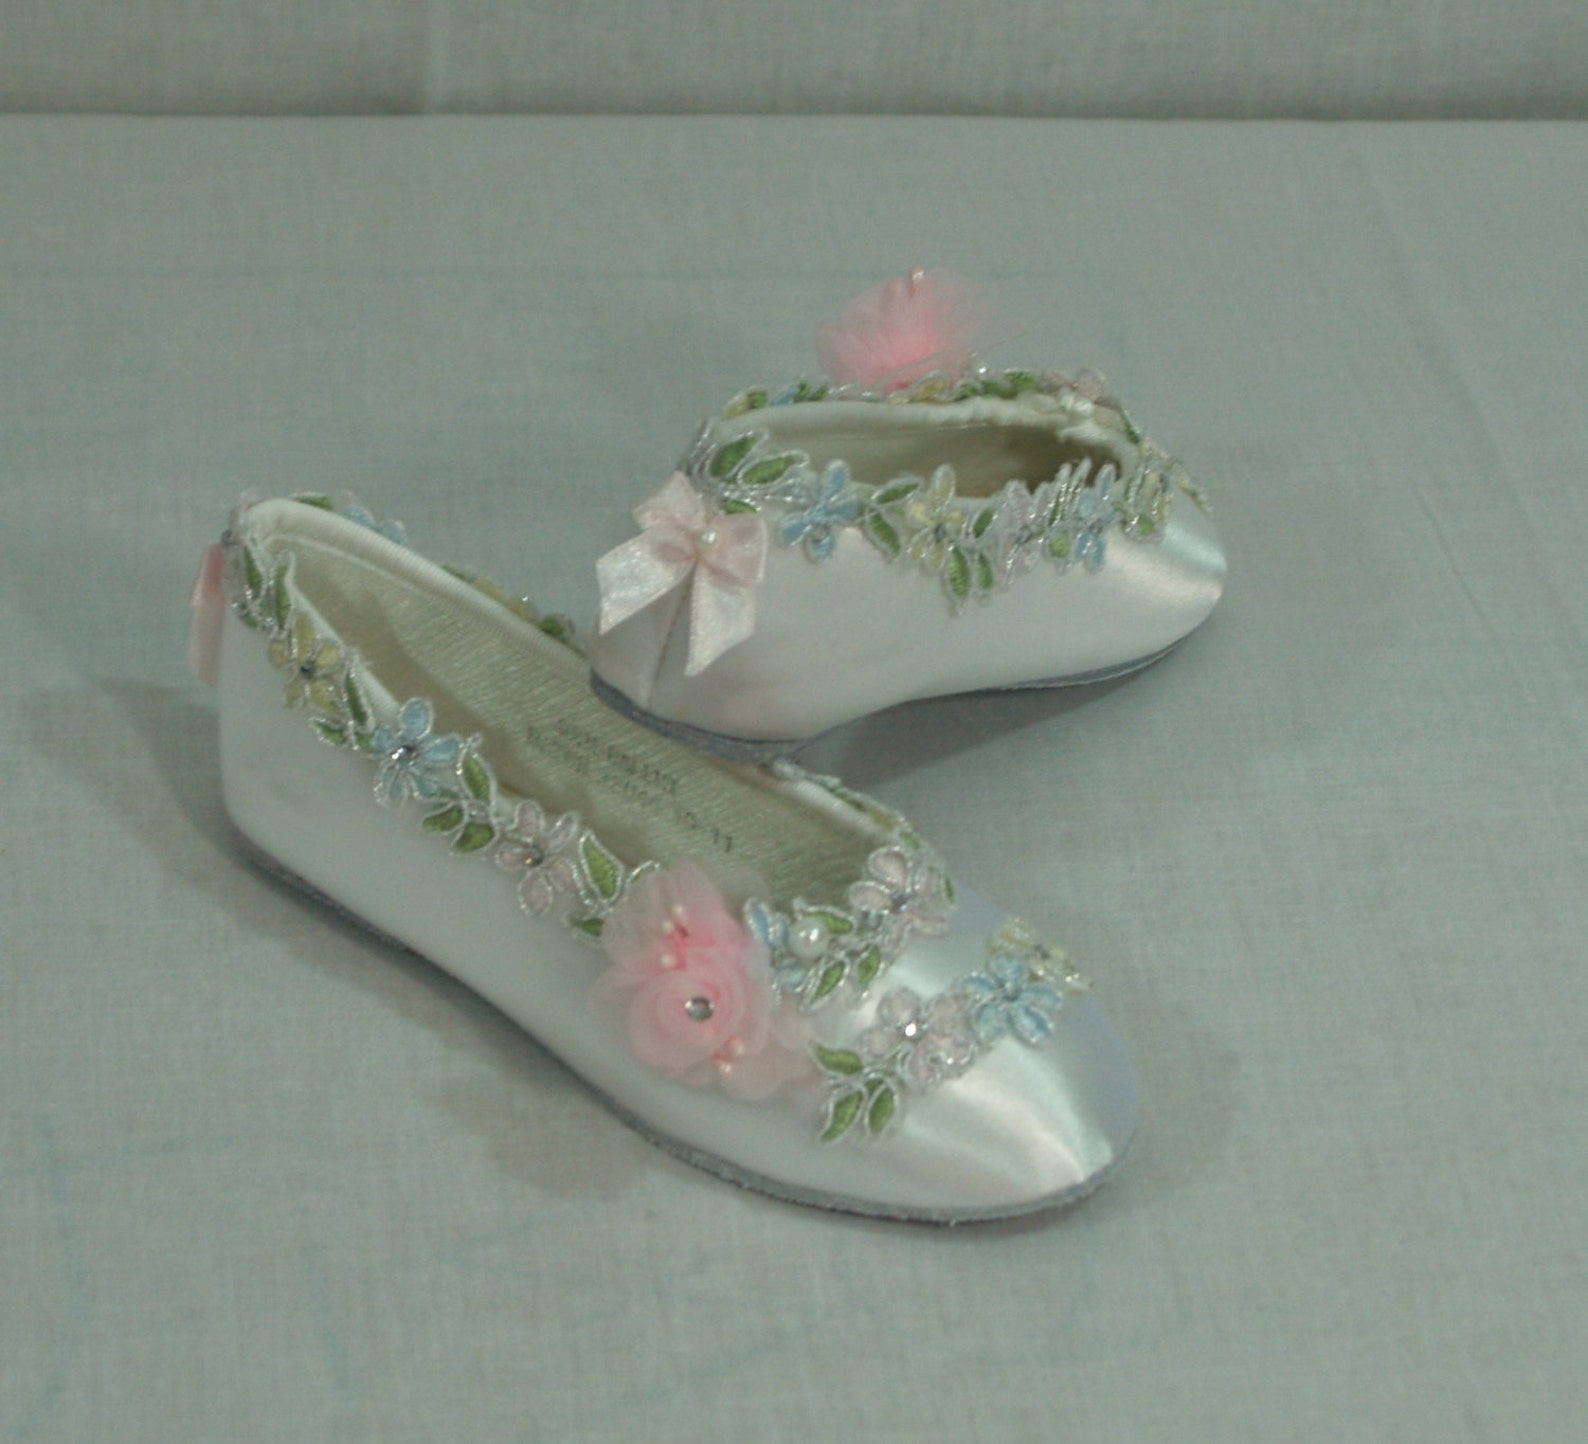 pastel flower girls shoes white satin flats, girls ballet style slippers, closed toe flats, pink, whimsical, woodland,garden chi